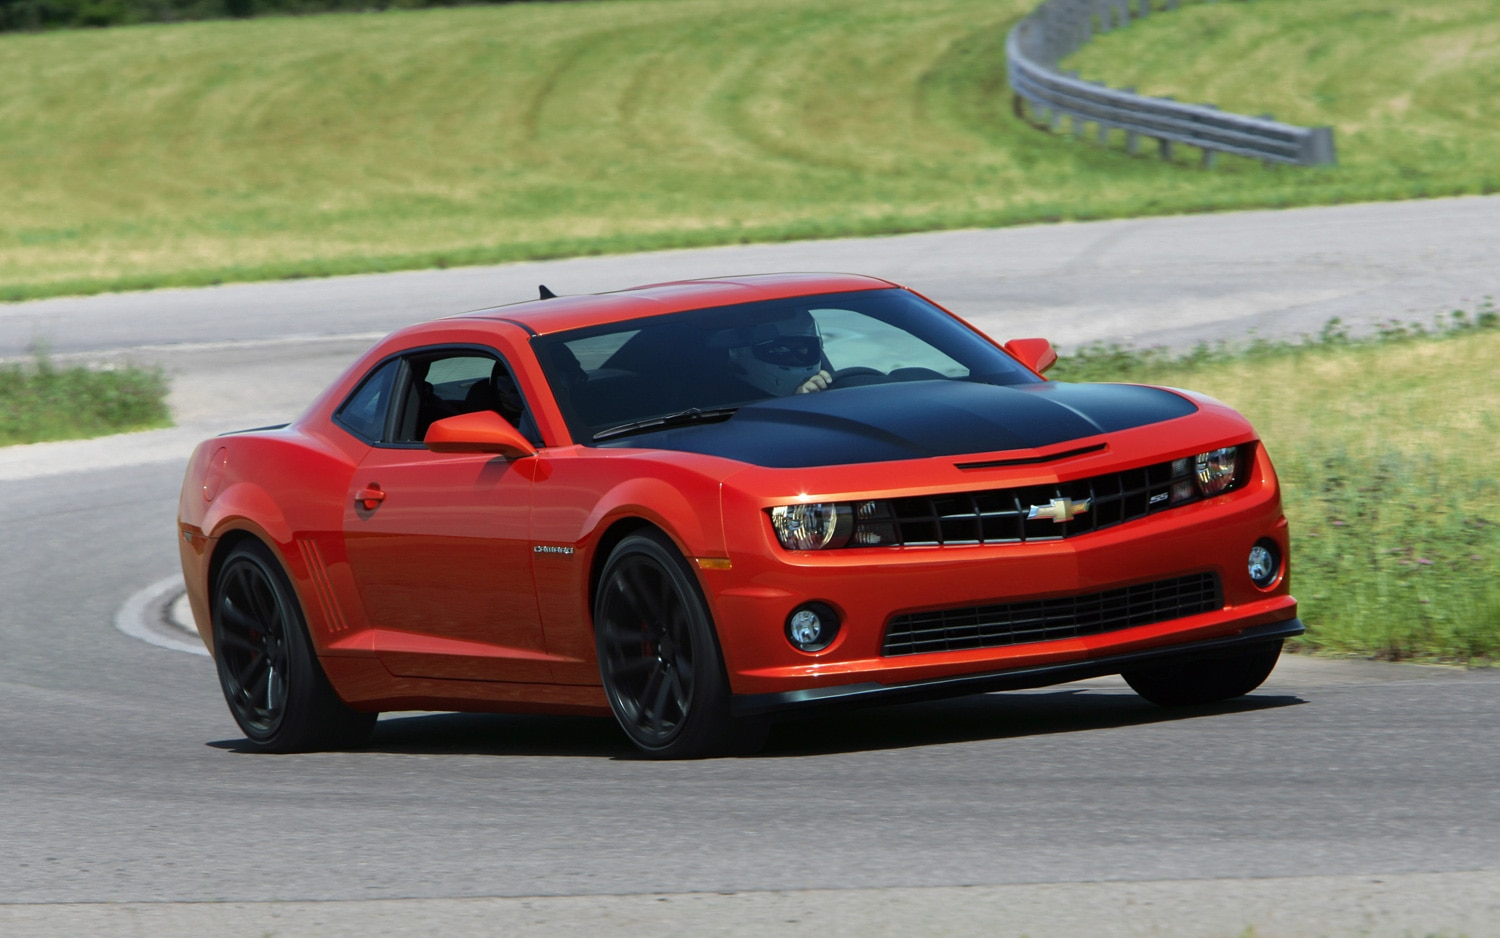 2013 Chevrolet Camaro 1LE Red Front Three Quarter 11